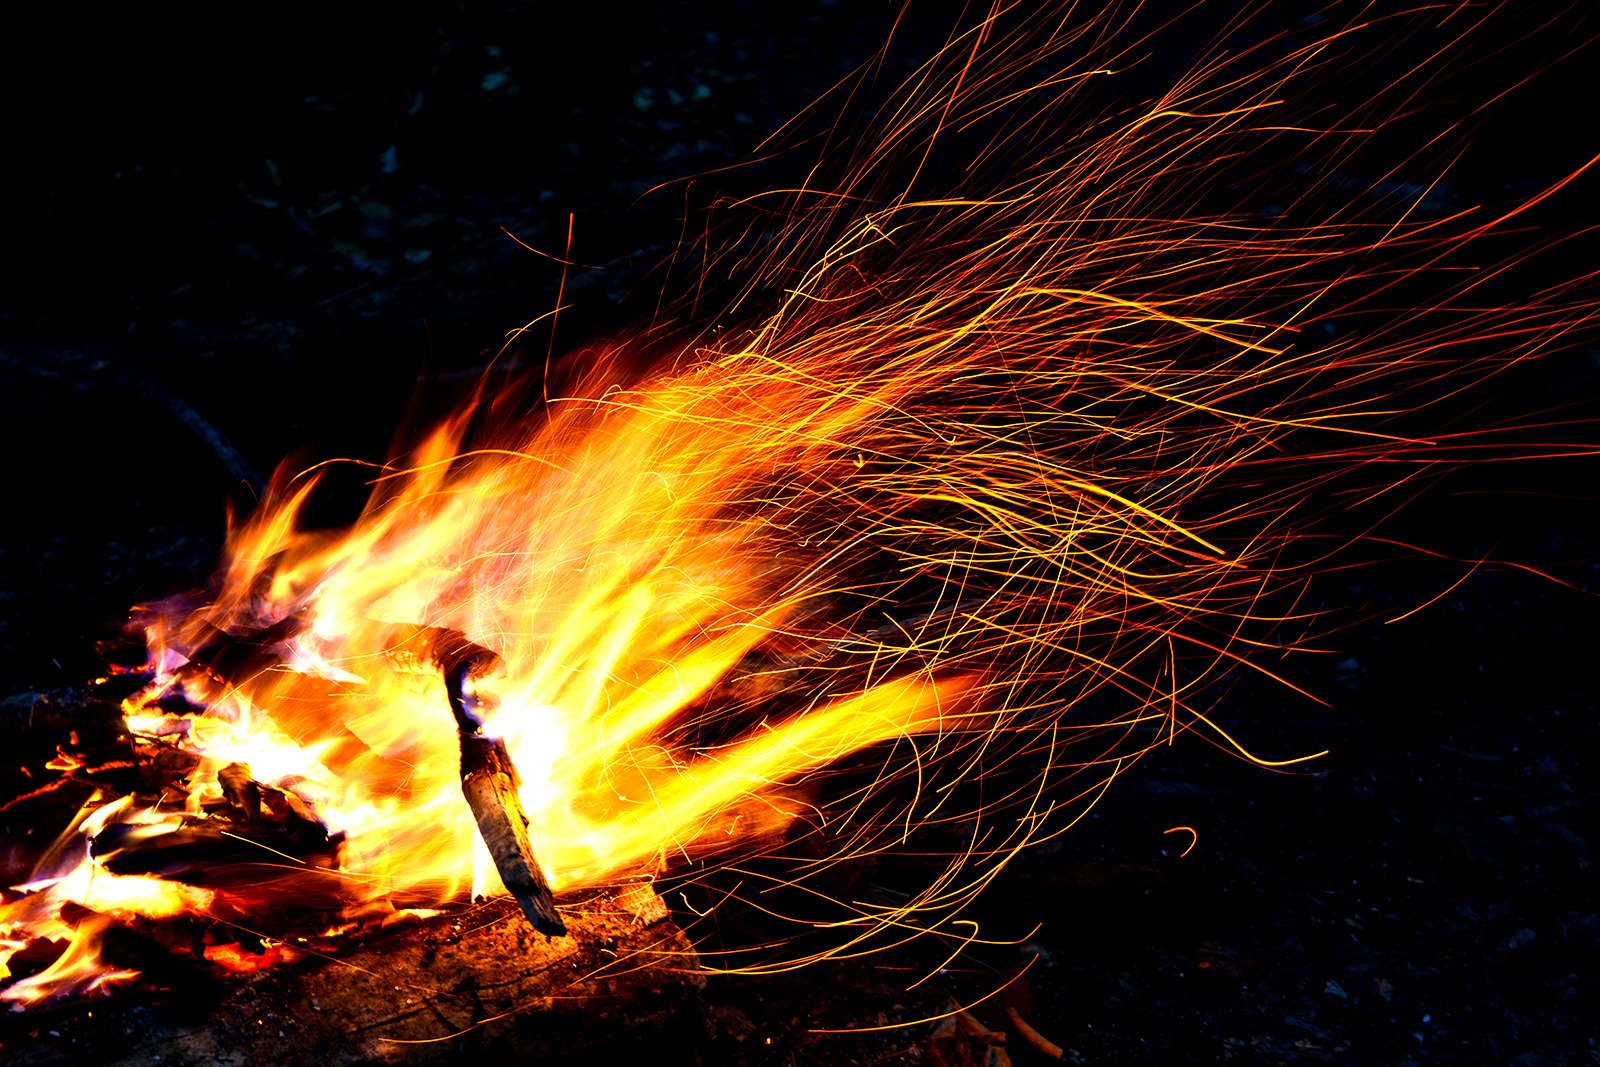 Settin' The Woods On Fire, but for good reasons ...